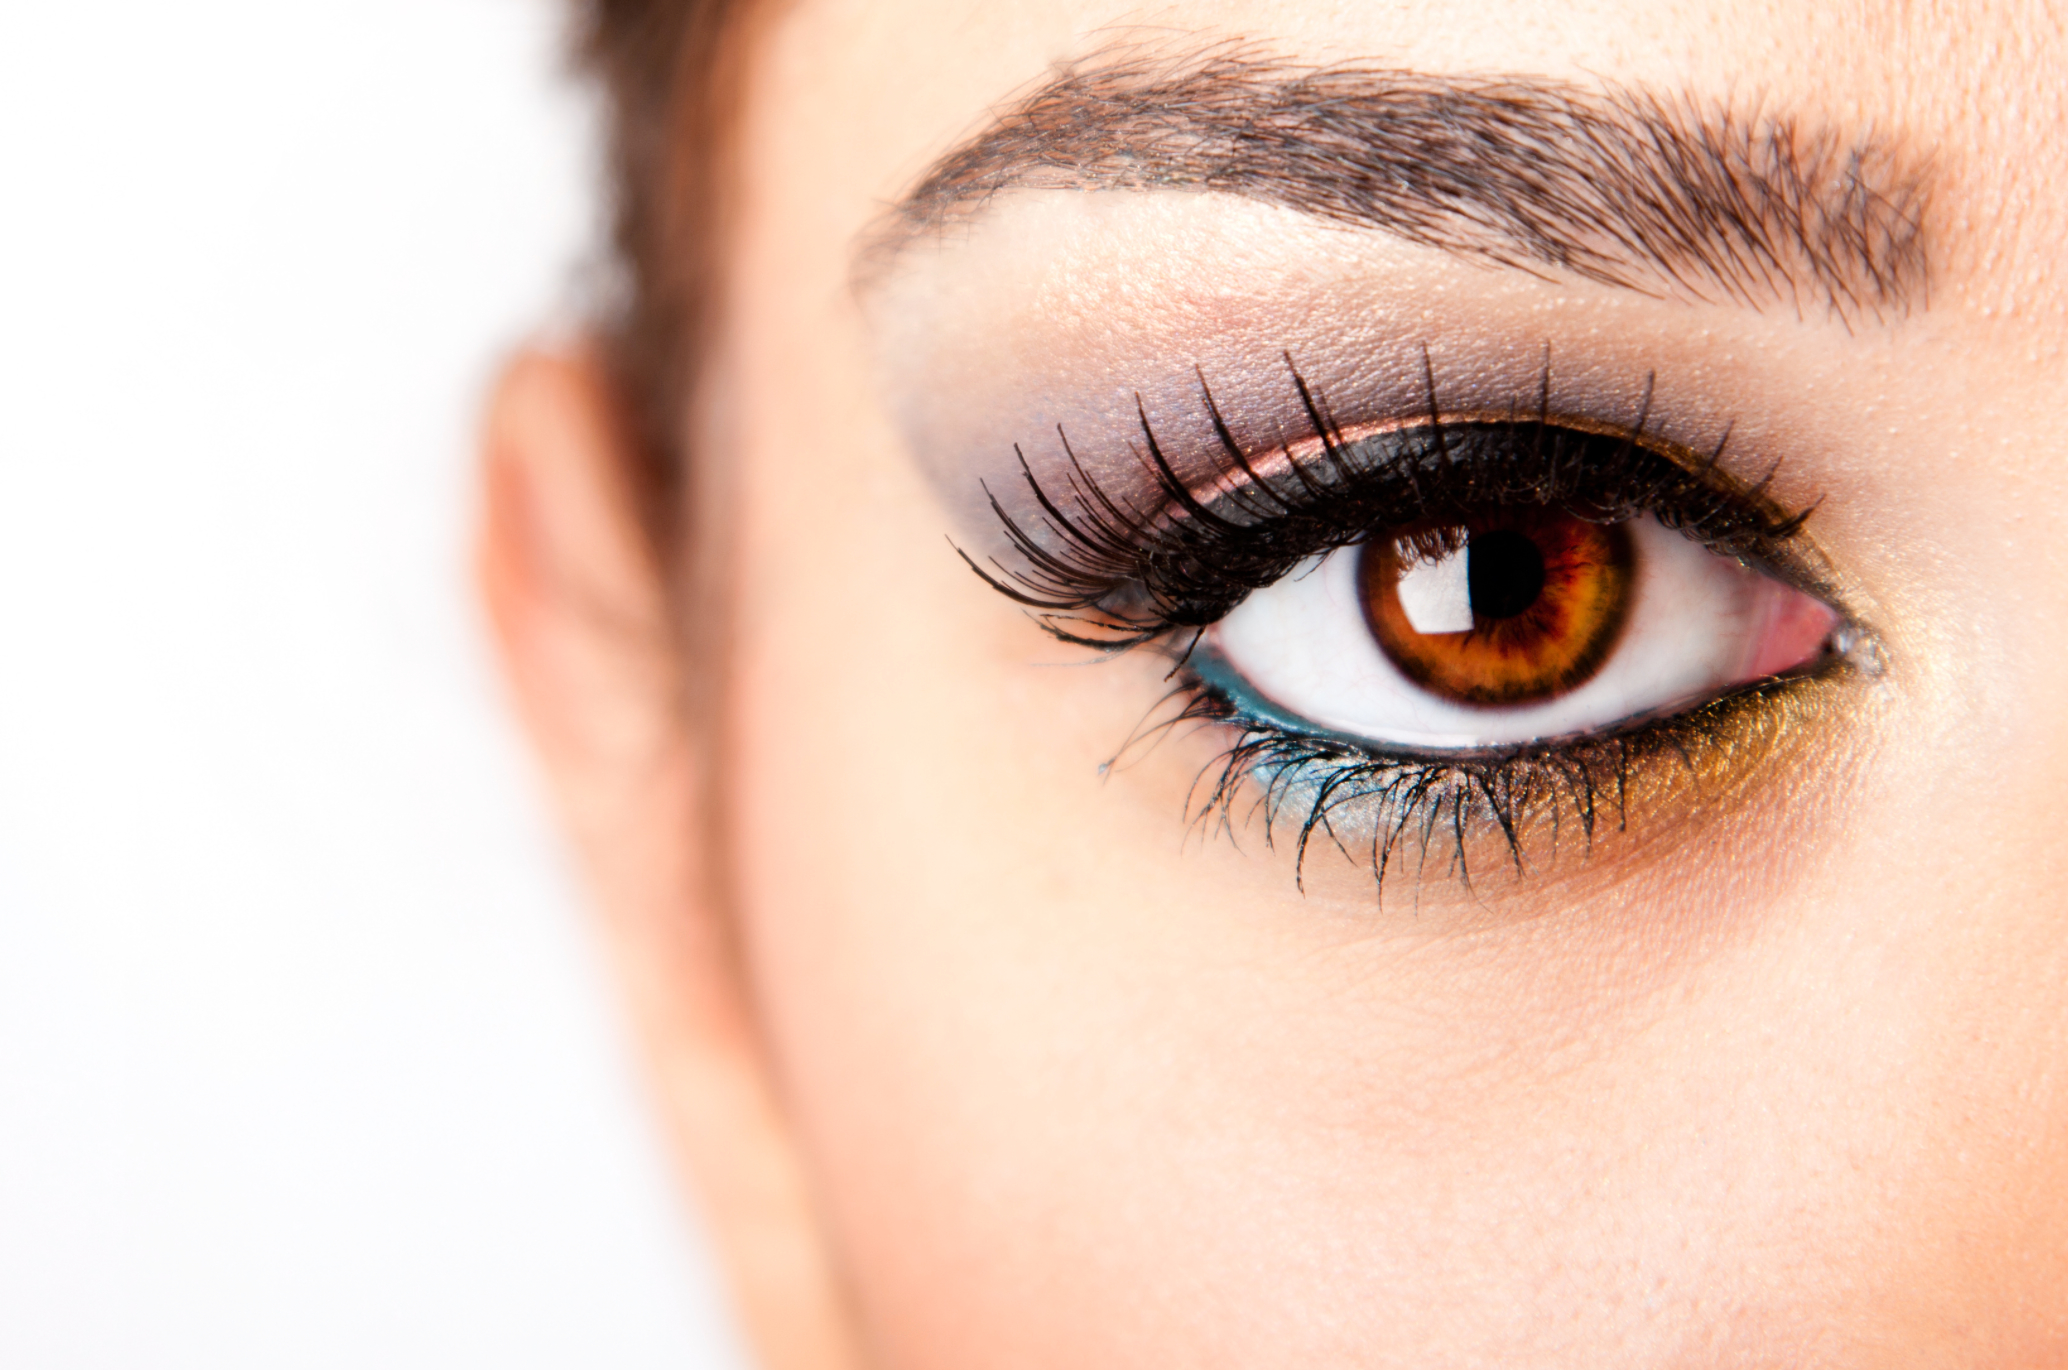 eyelash-maintenance-health_jpg_3_302×2_202_pixels